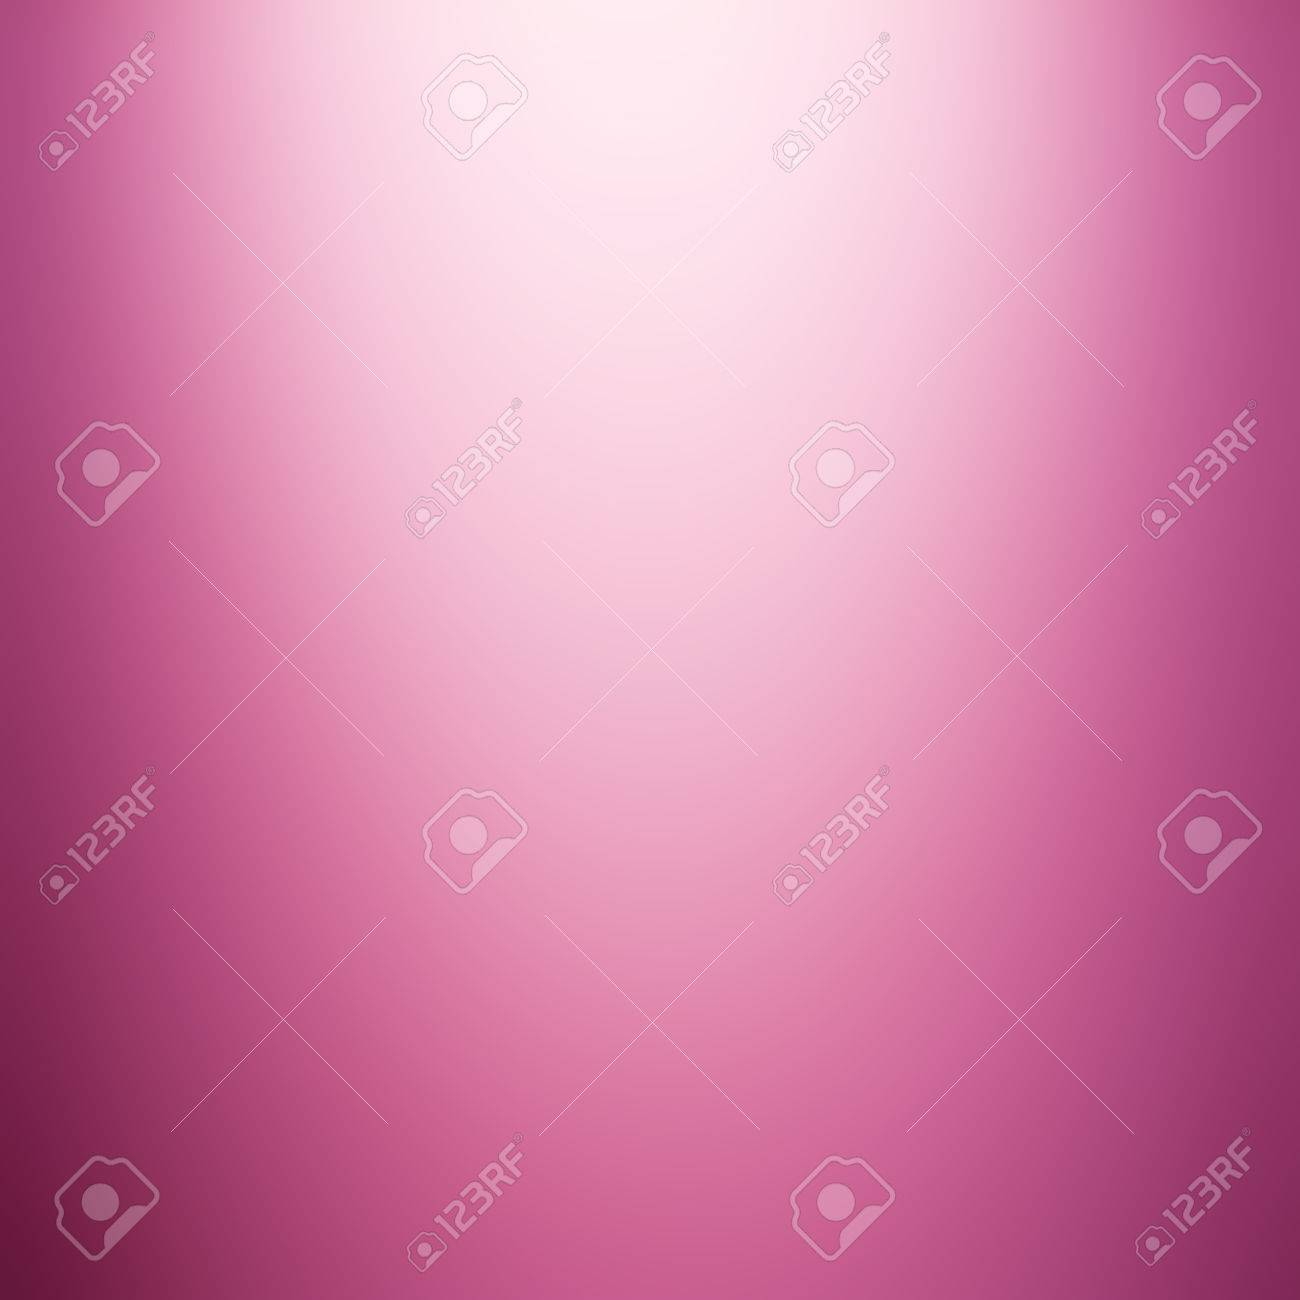 Colorful Pink Gradient Abstract Background Stock Photo, Picture ...